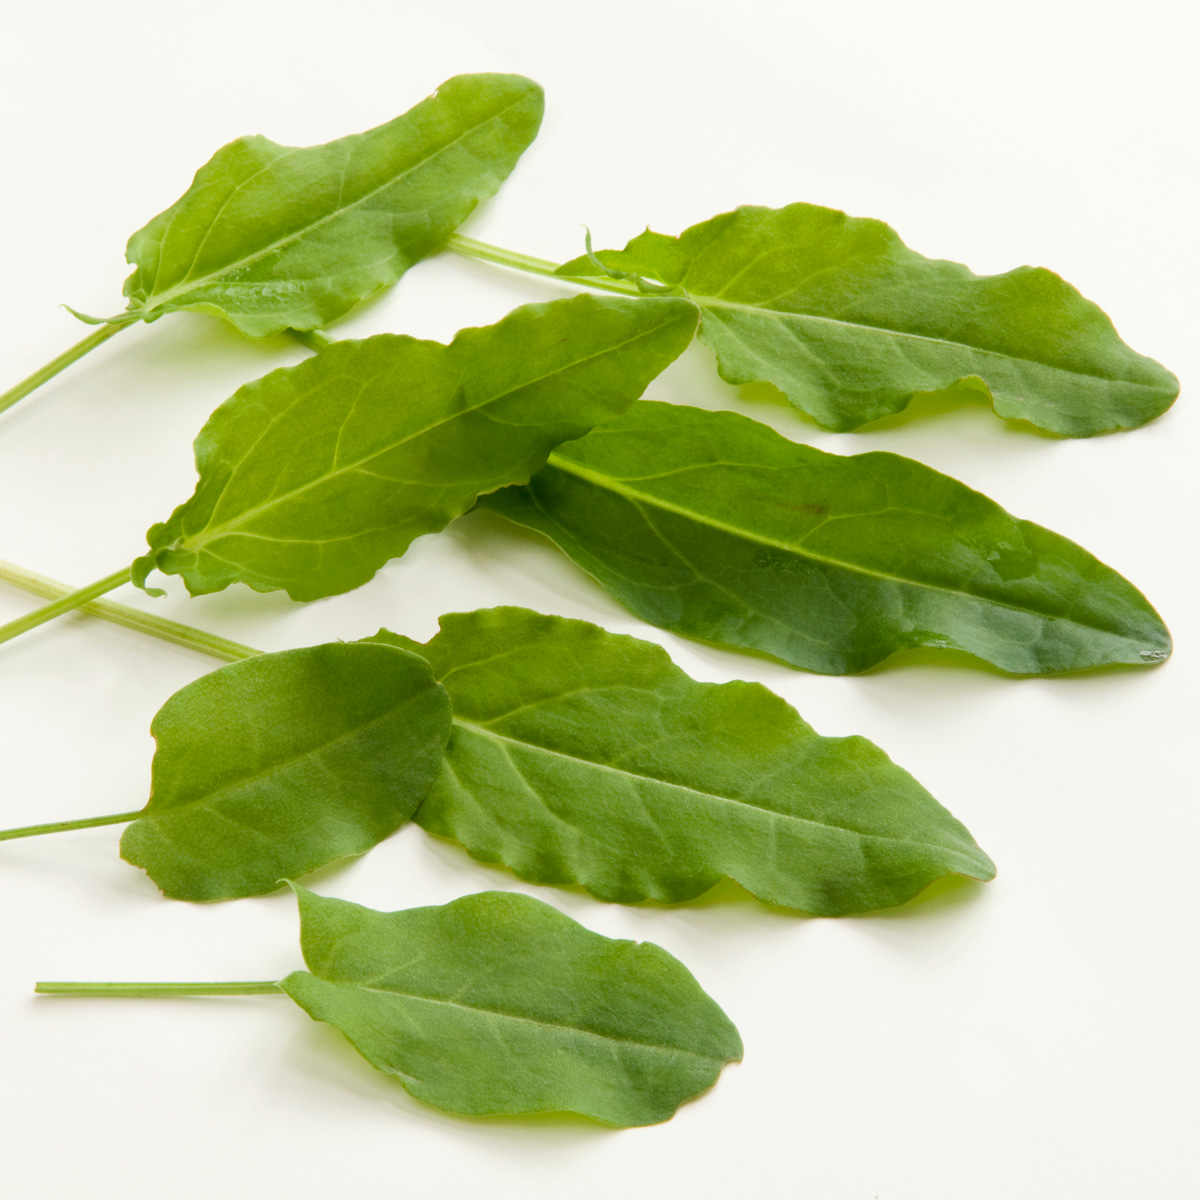 Sorrel Edible Weeds